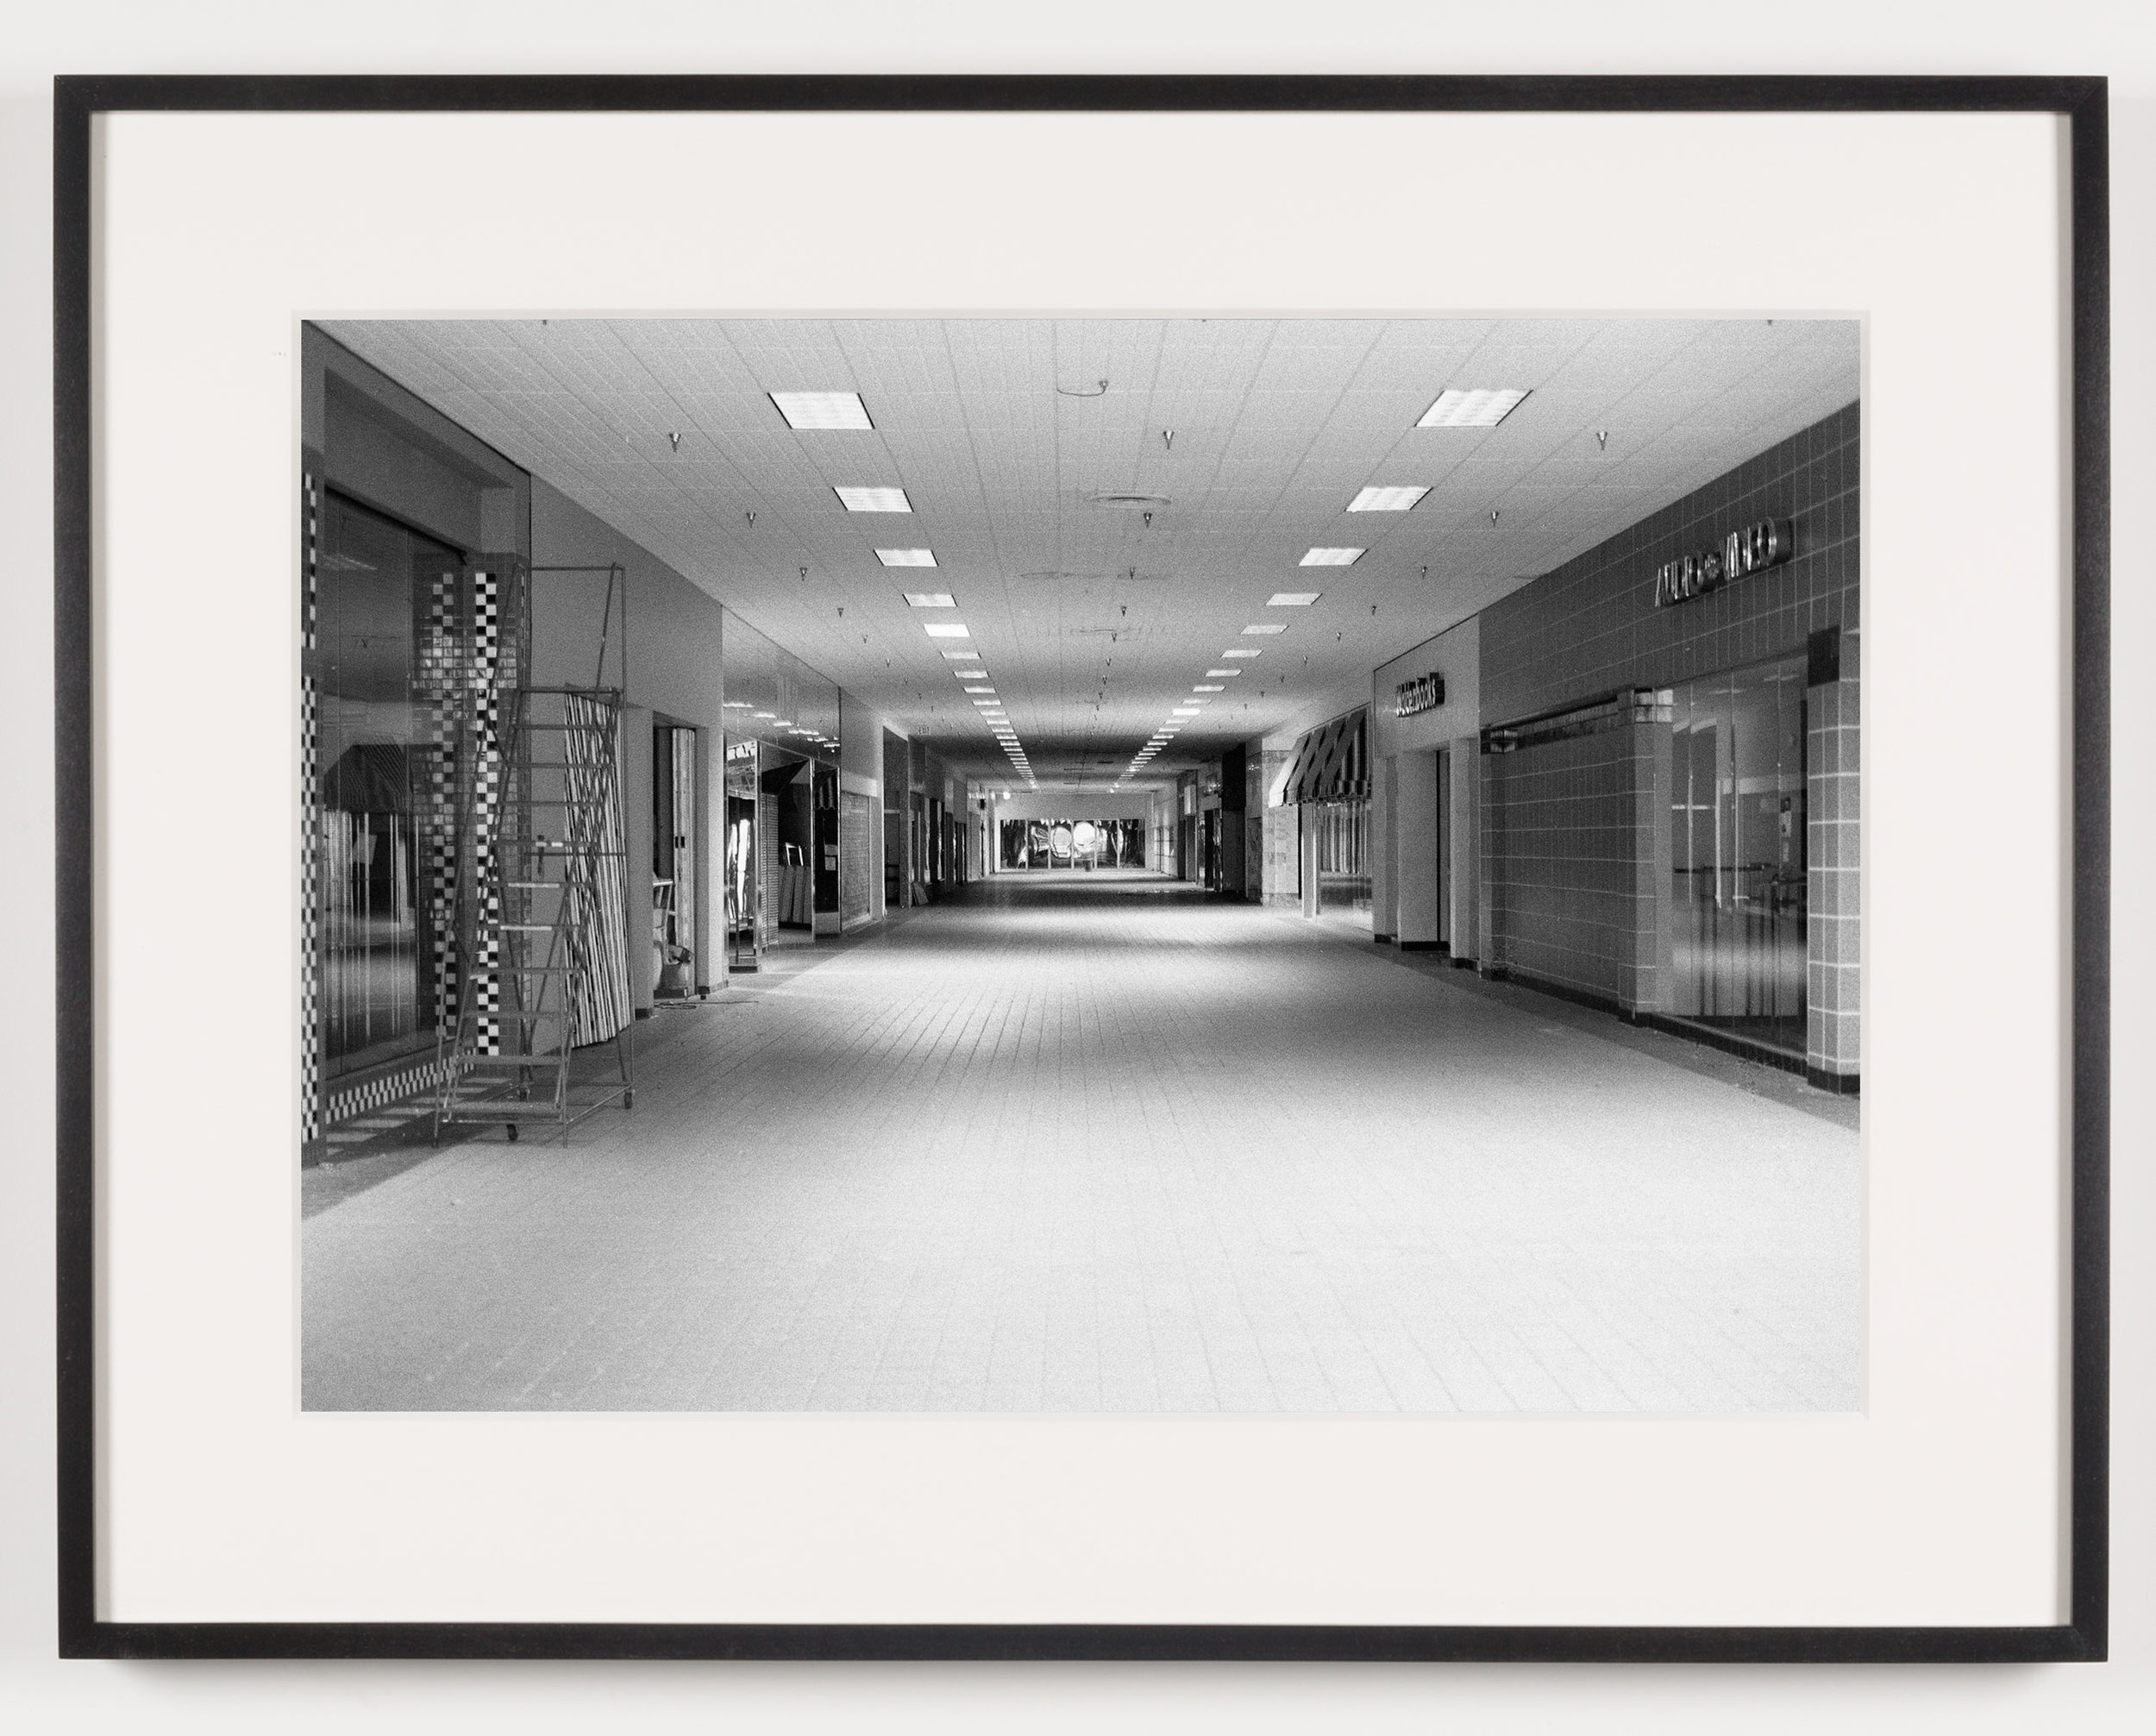 Lockport Mall (View of Interior), Lockport, NY, Est. 1971, Demo. 2011   2011  Epson Ultrachrome K3 archival ink jet print on Hahnemühle Photo Rag paper  21 5/8 x 28 1/8 inches   American Passages, 2001–2011    A Diagram of Forces, 2011